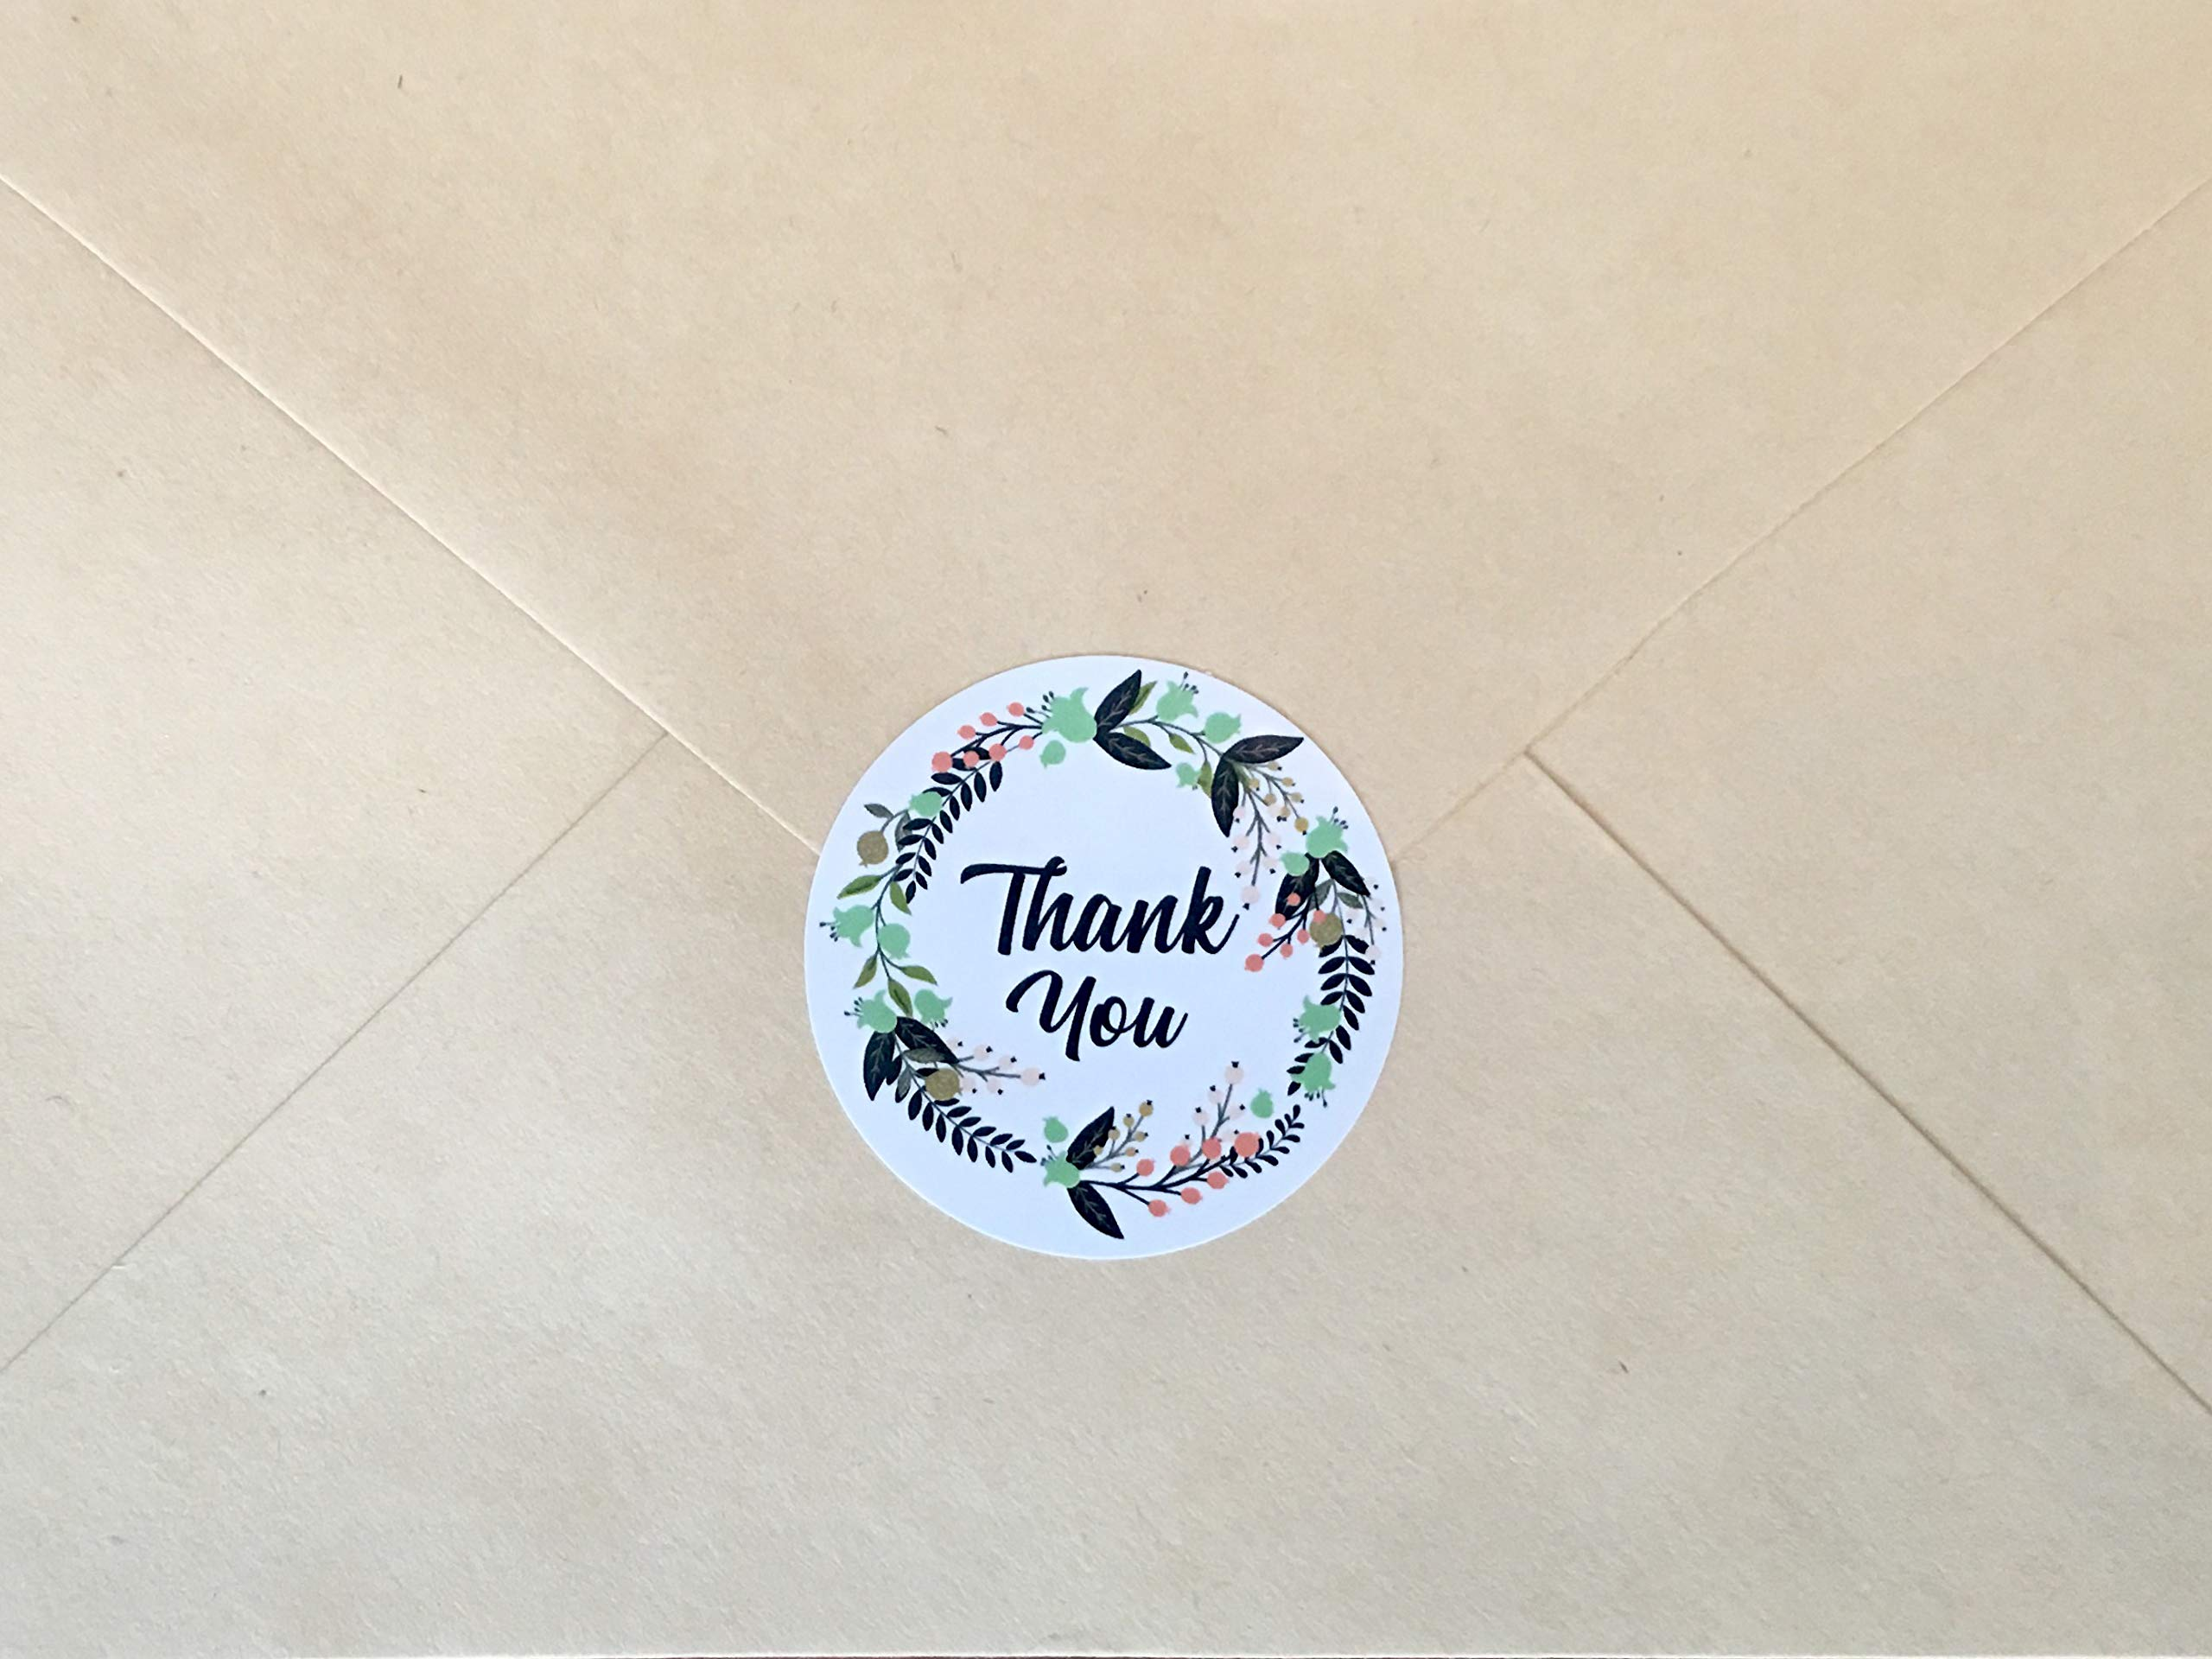 Ivy Paper Co Modern Floral Thank You Stickers | Roll of 1000 | 1.5'' Flower Envelope Sealers | Beautiful Circle Labels for Business, Gifts, Bridal, Thank You Cards Notes | Boho Gift Tags |Cute Stickers by Ivy Paper Co (Image #4)